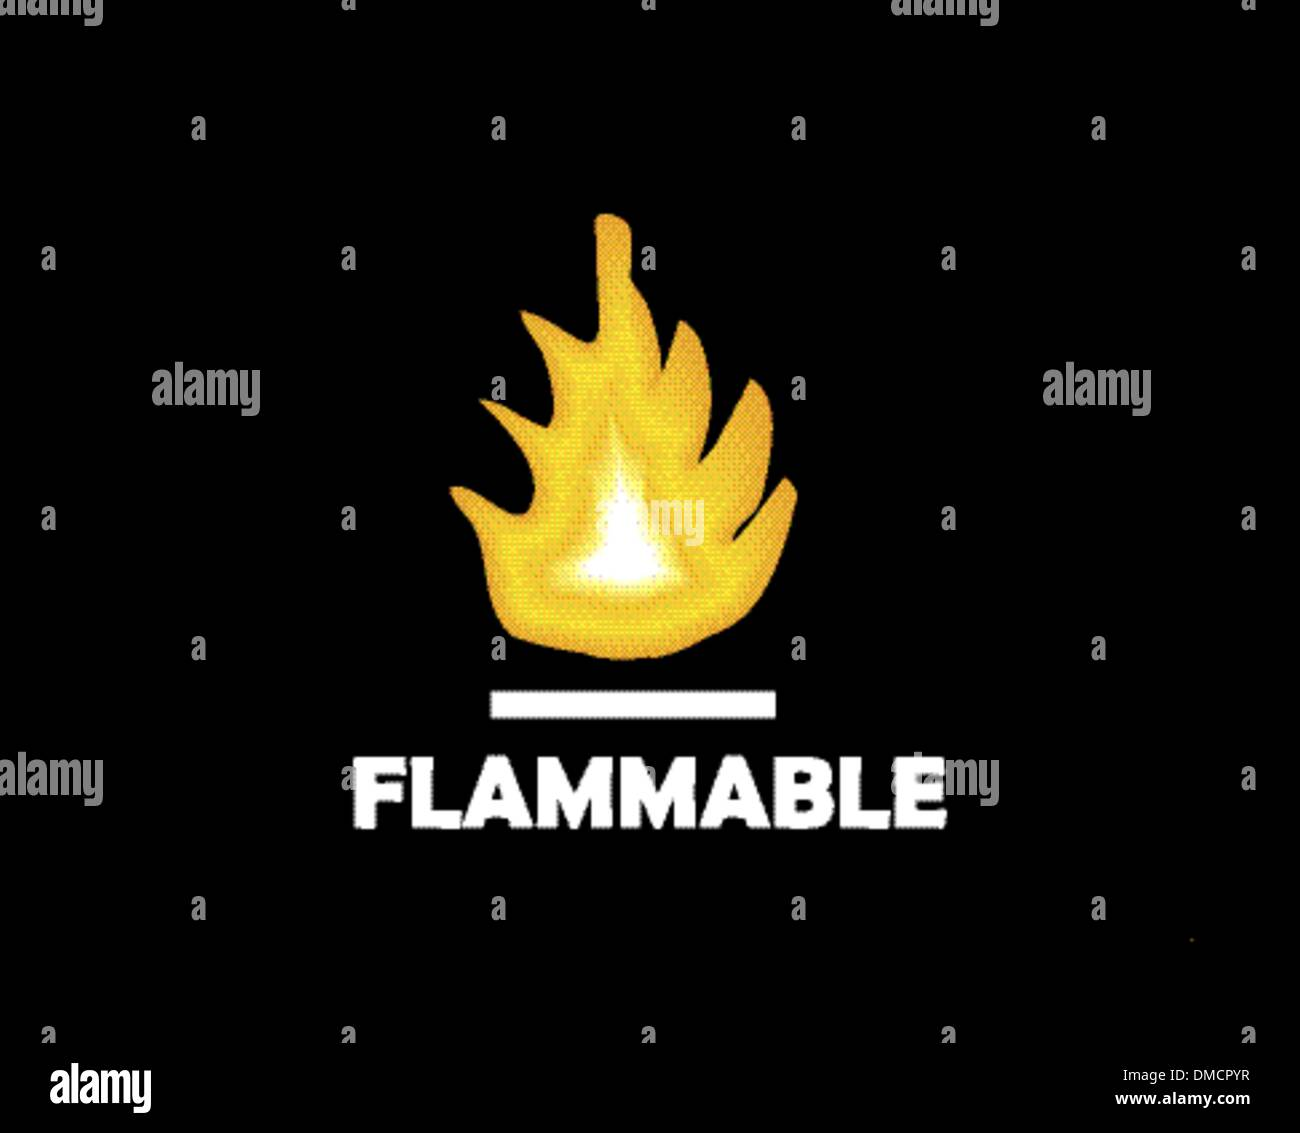 flame illustration,  flammable - Stock Image